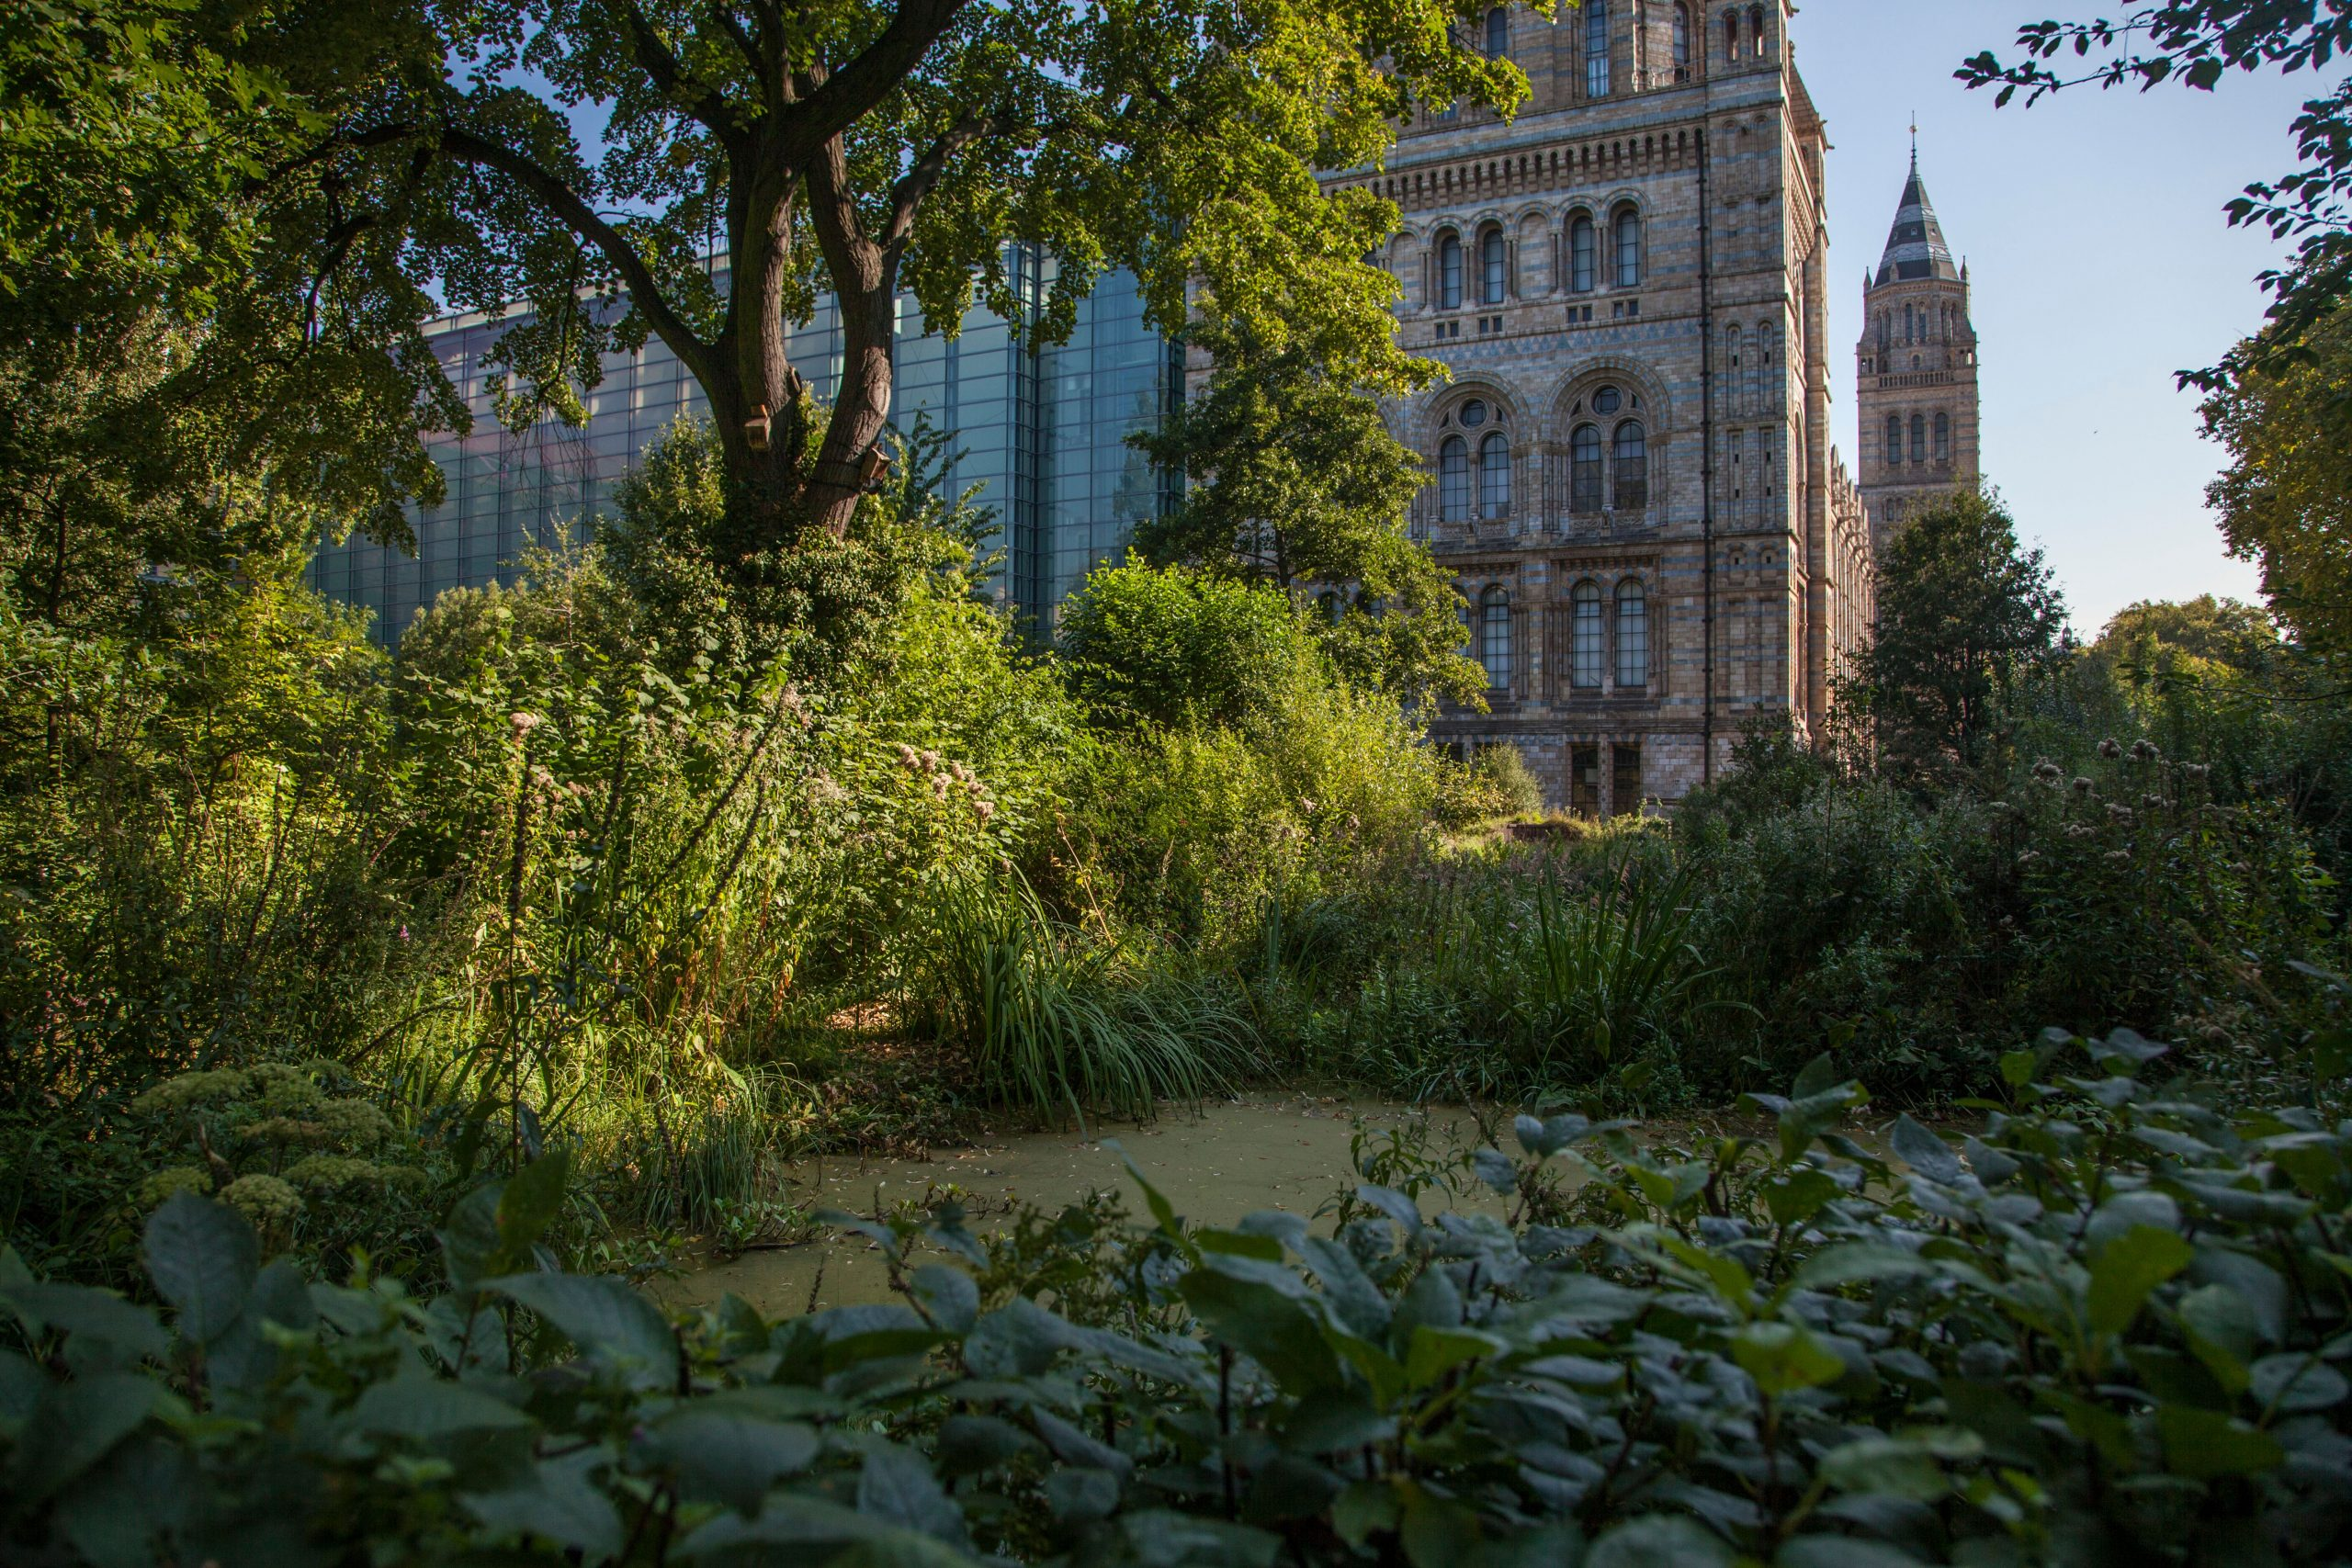 The wildlife garden at the Natural History Museum. The institution has stepped up its environmental commitments